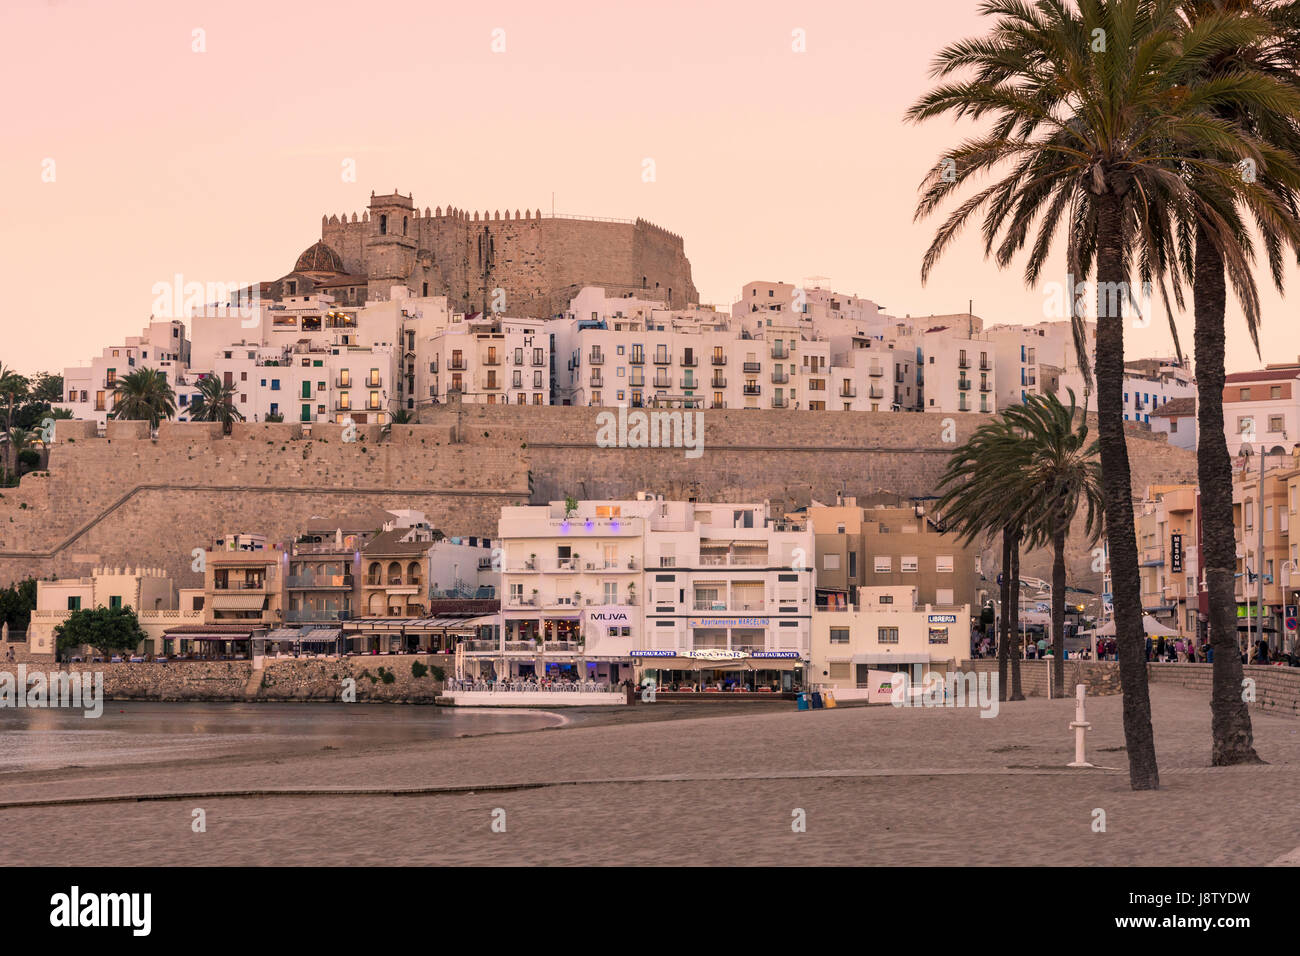 Papa Luna's Castle and old town at sunset, Peniscola, Castellon, Spain - Stock Image